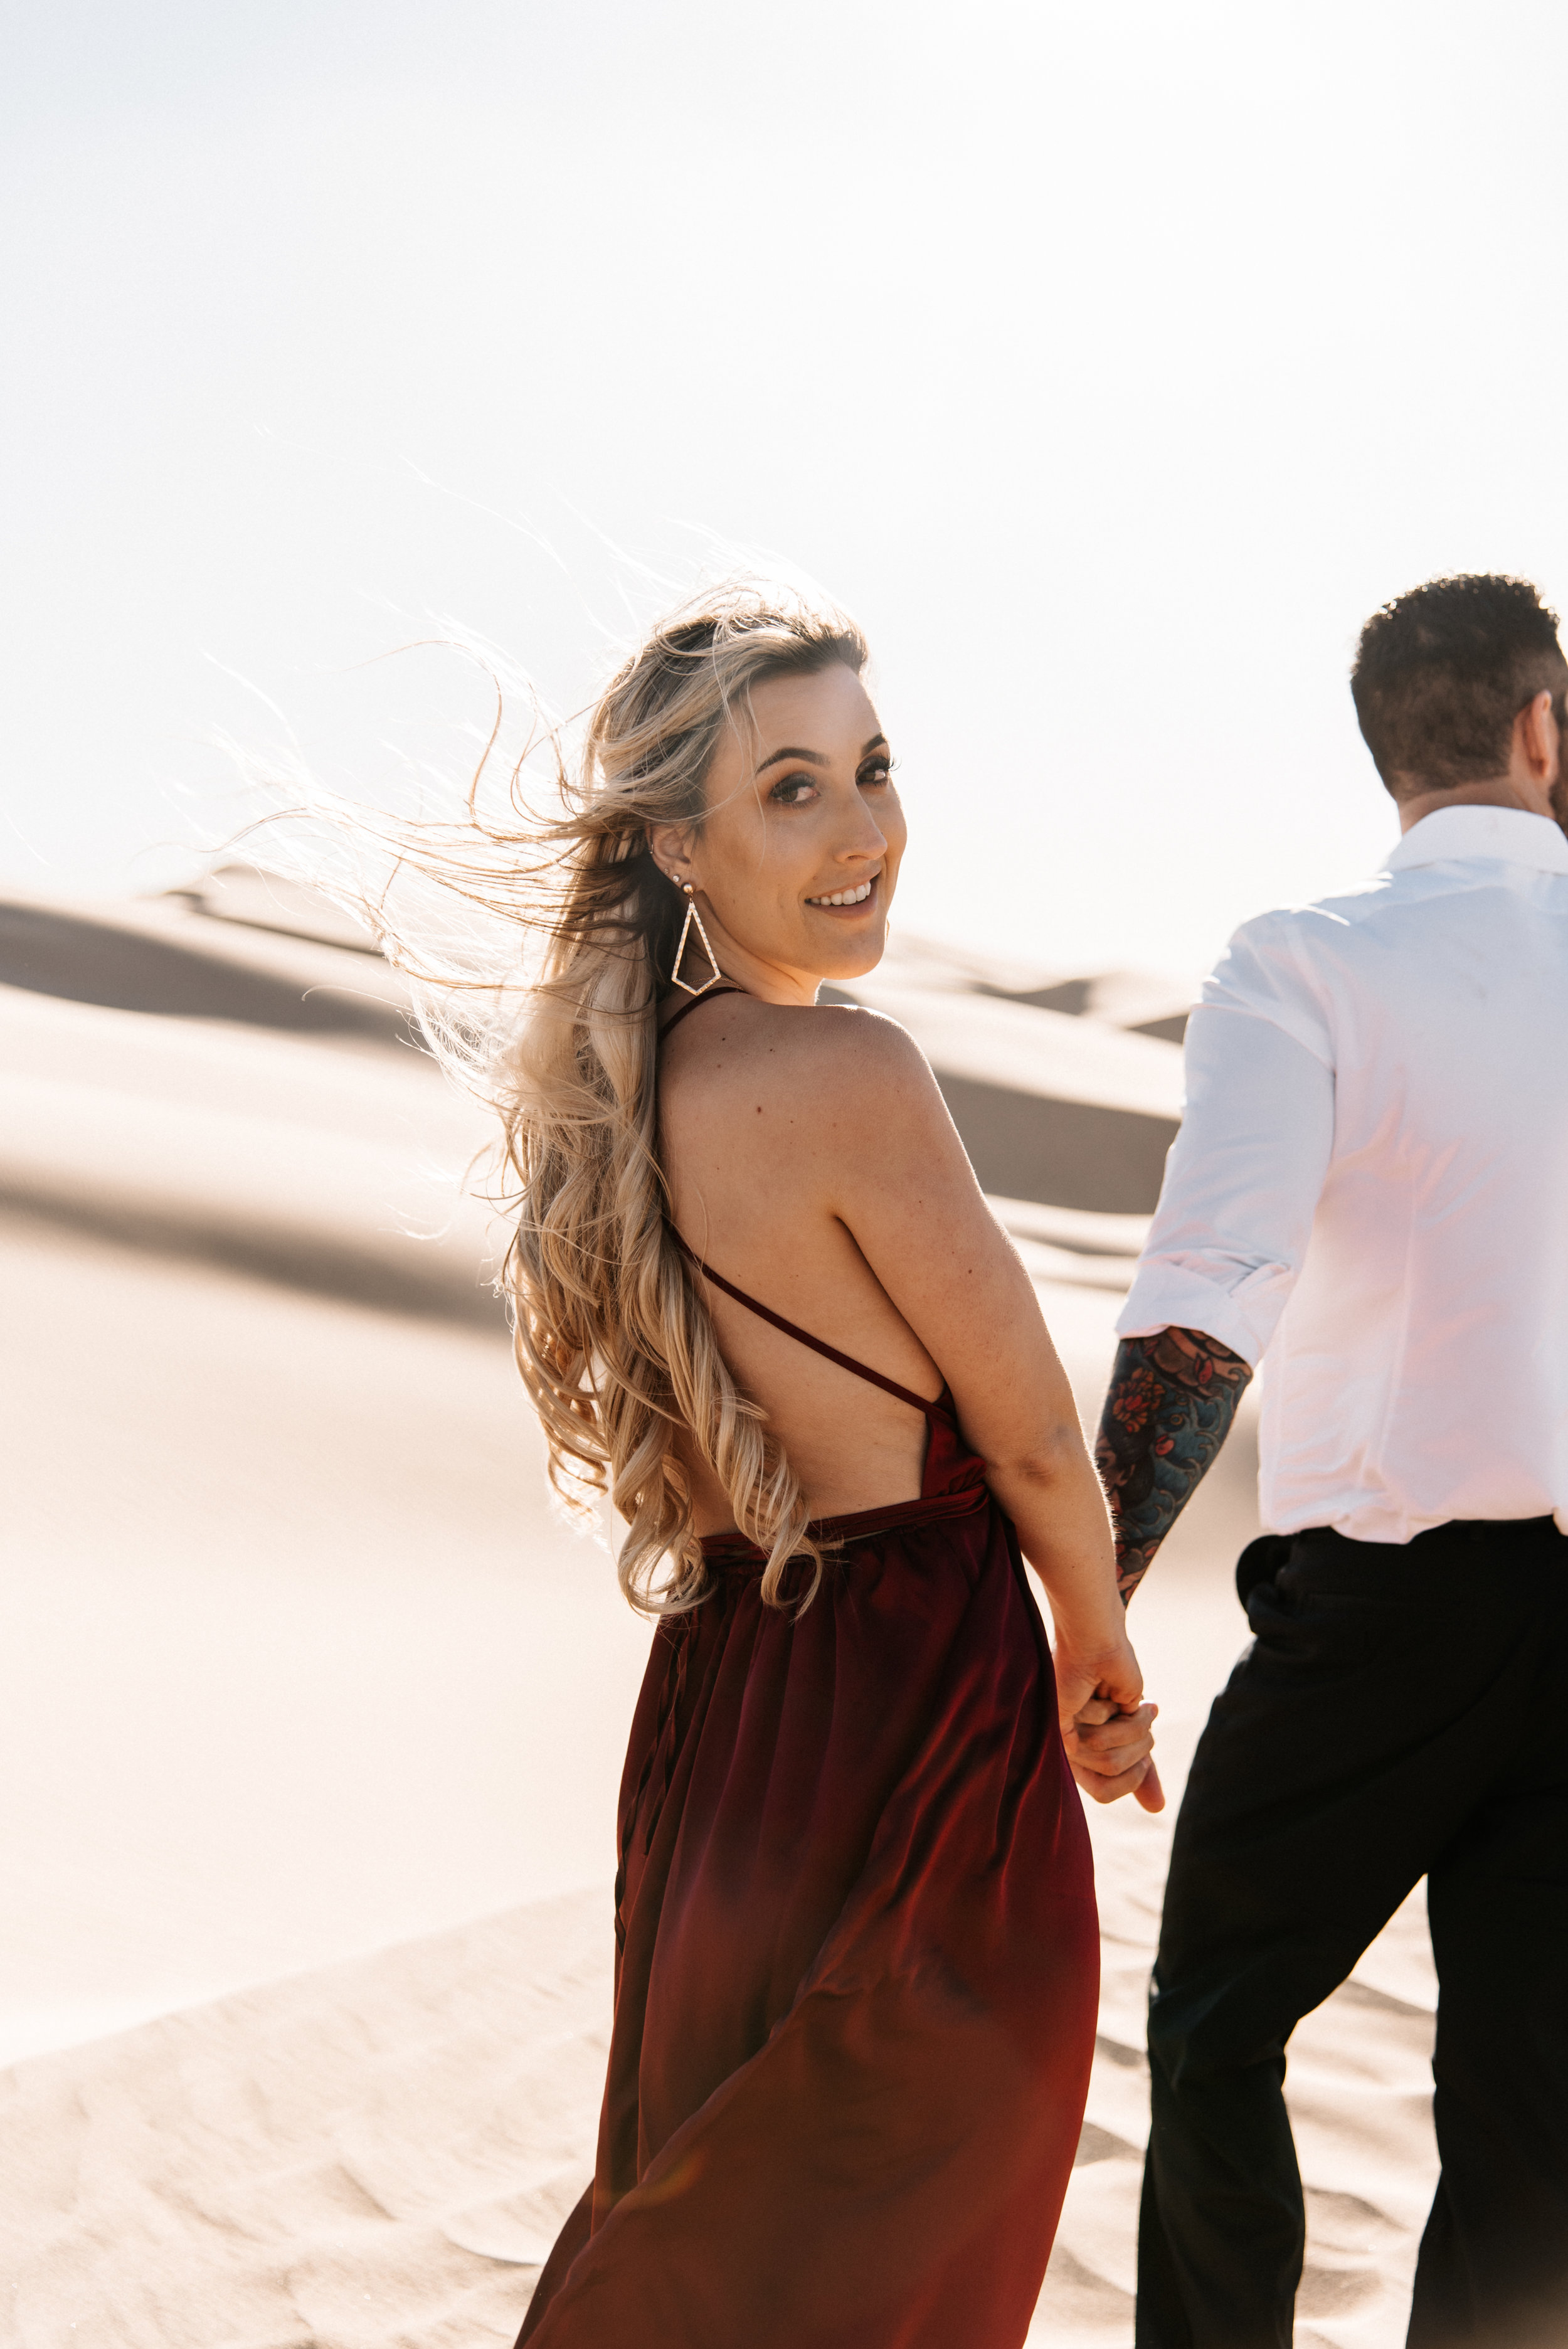 SamErica Studios - Modern San Diego Engagement Photographer - Adventure Engagement Session in Glamis Sand Dunes California-28.jpg